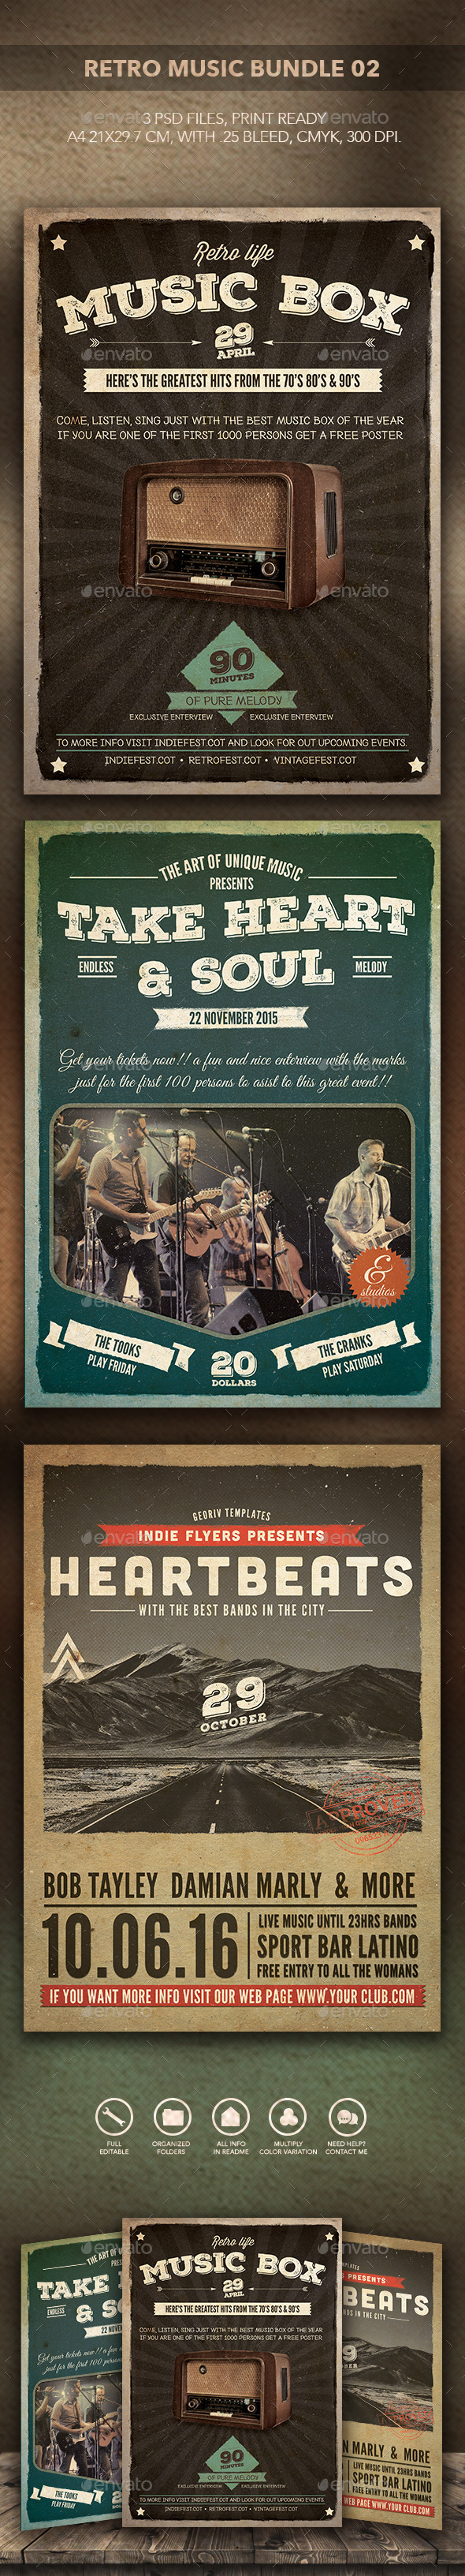 GraphicRiver Retro Music Bundle 02 10460631